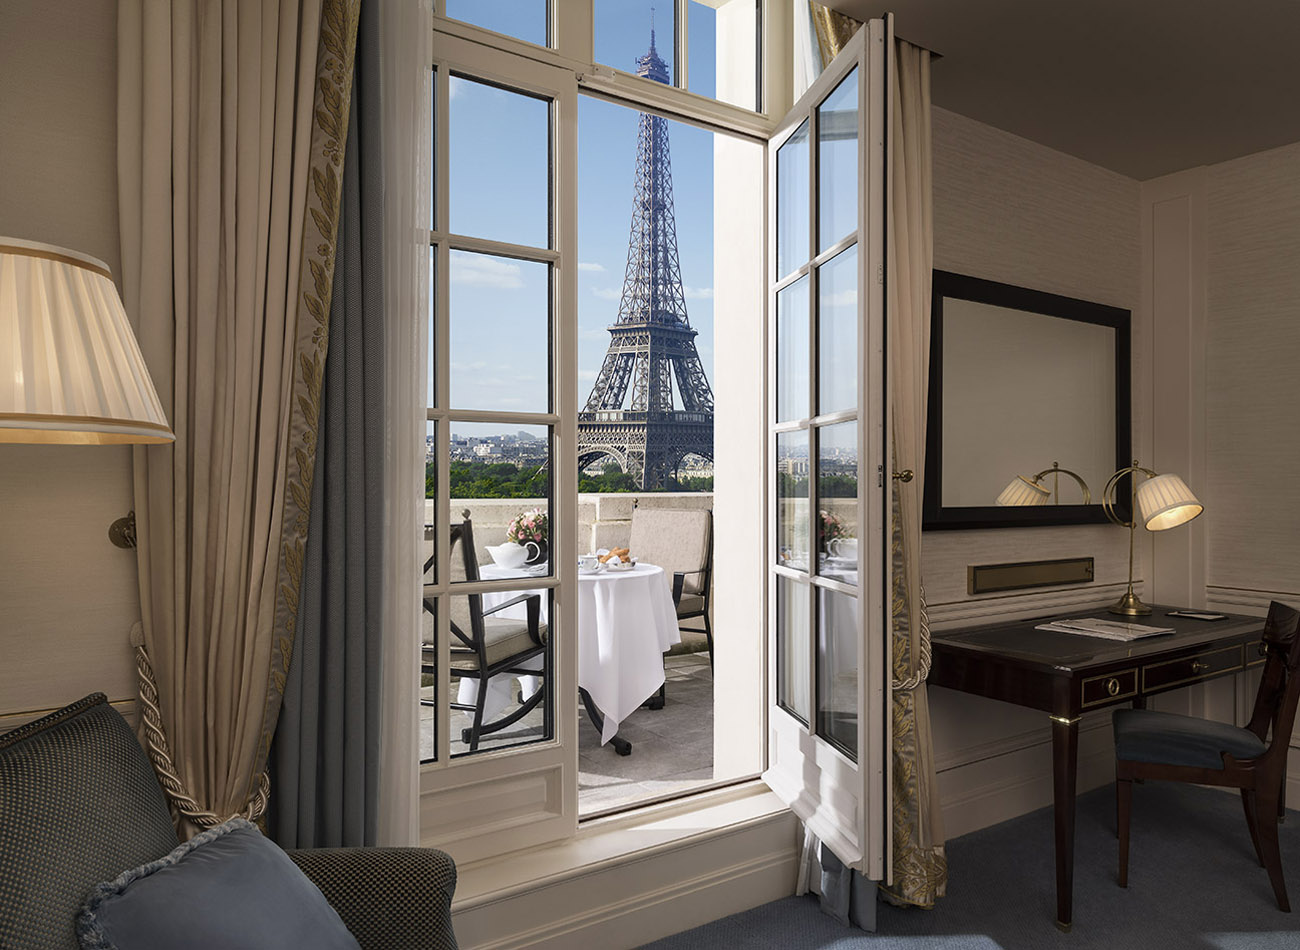 Shangri-La Paris: Terrace Eiffel Tower View Room